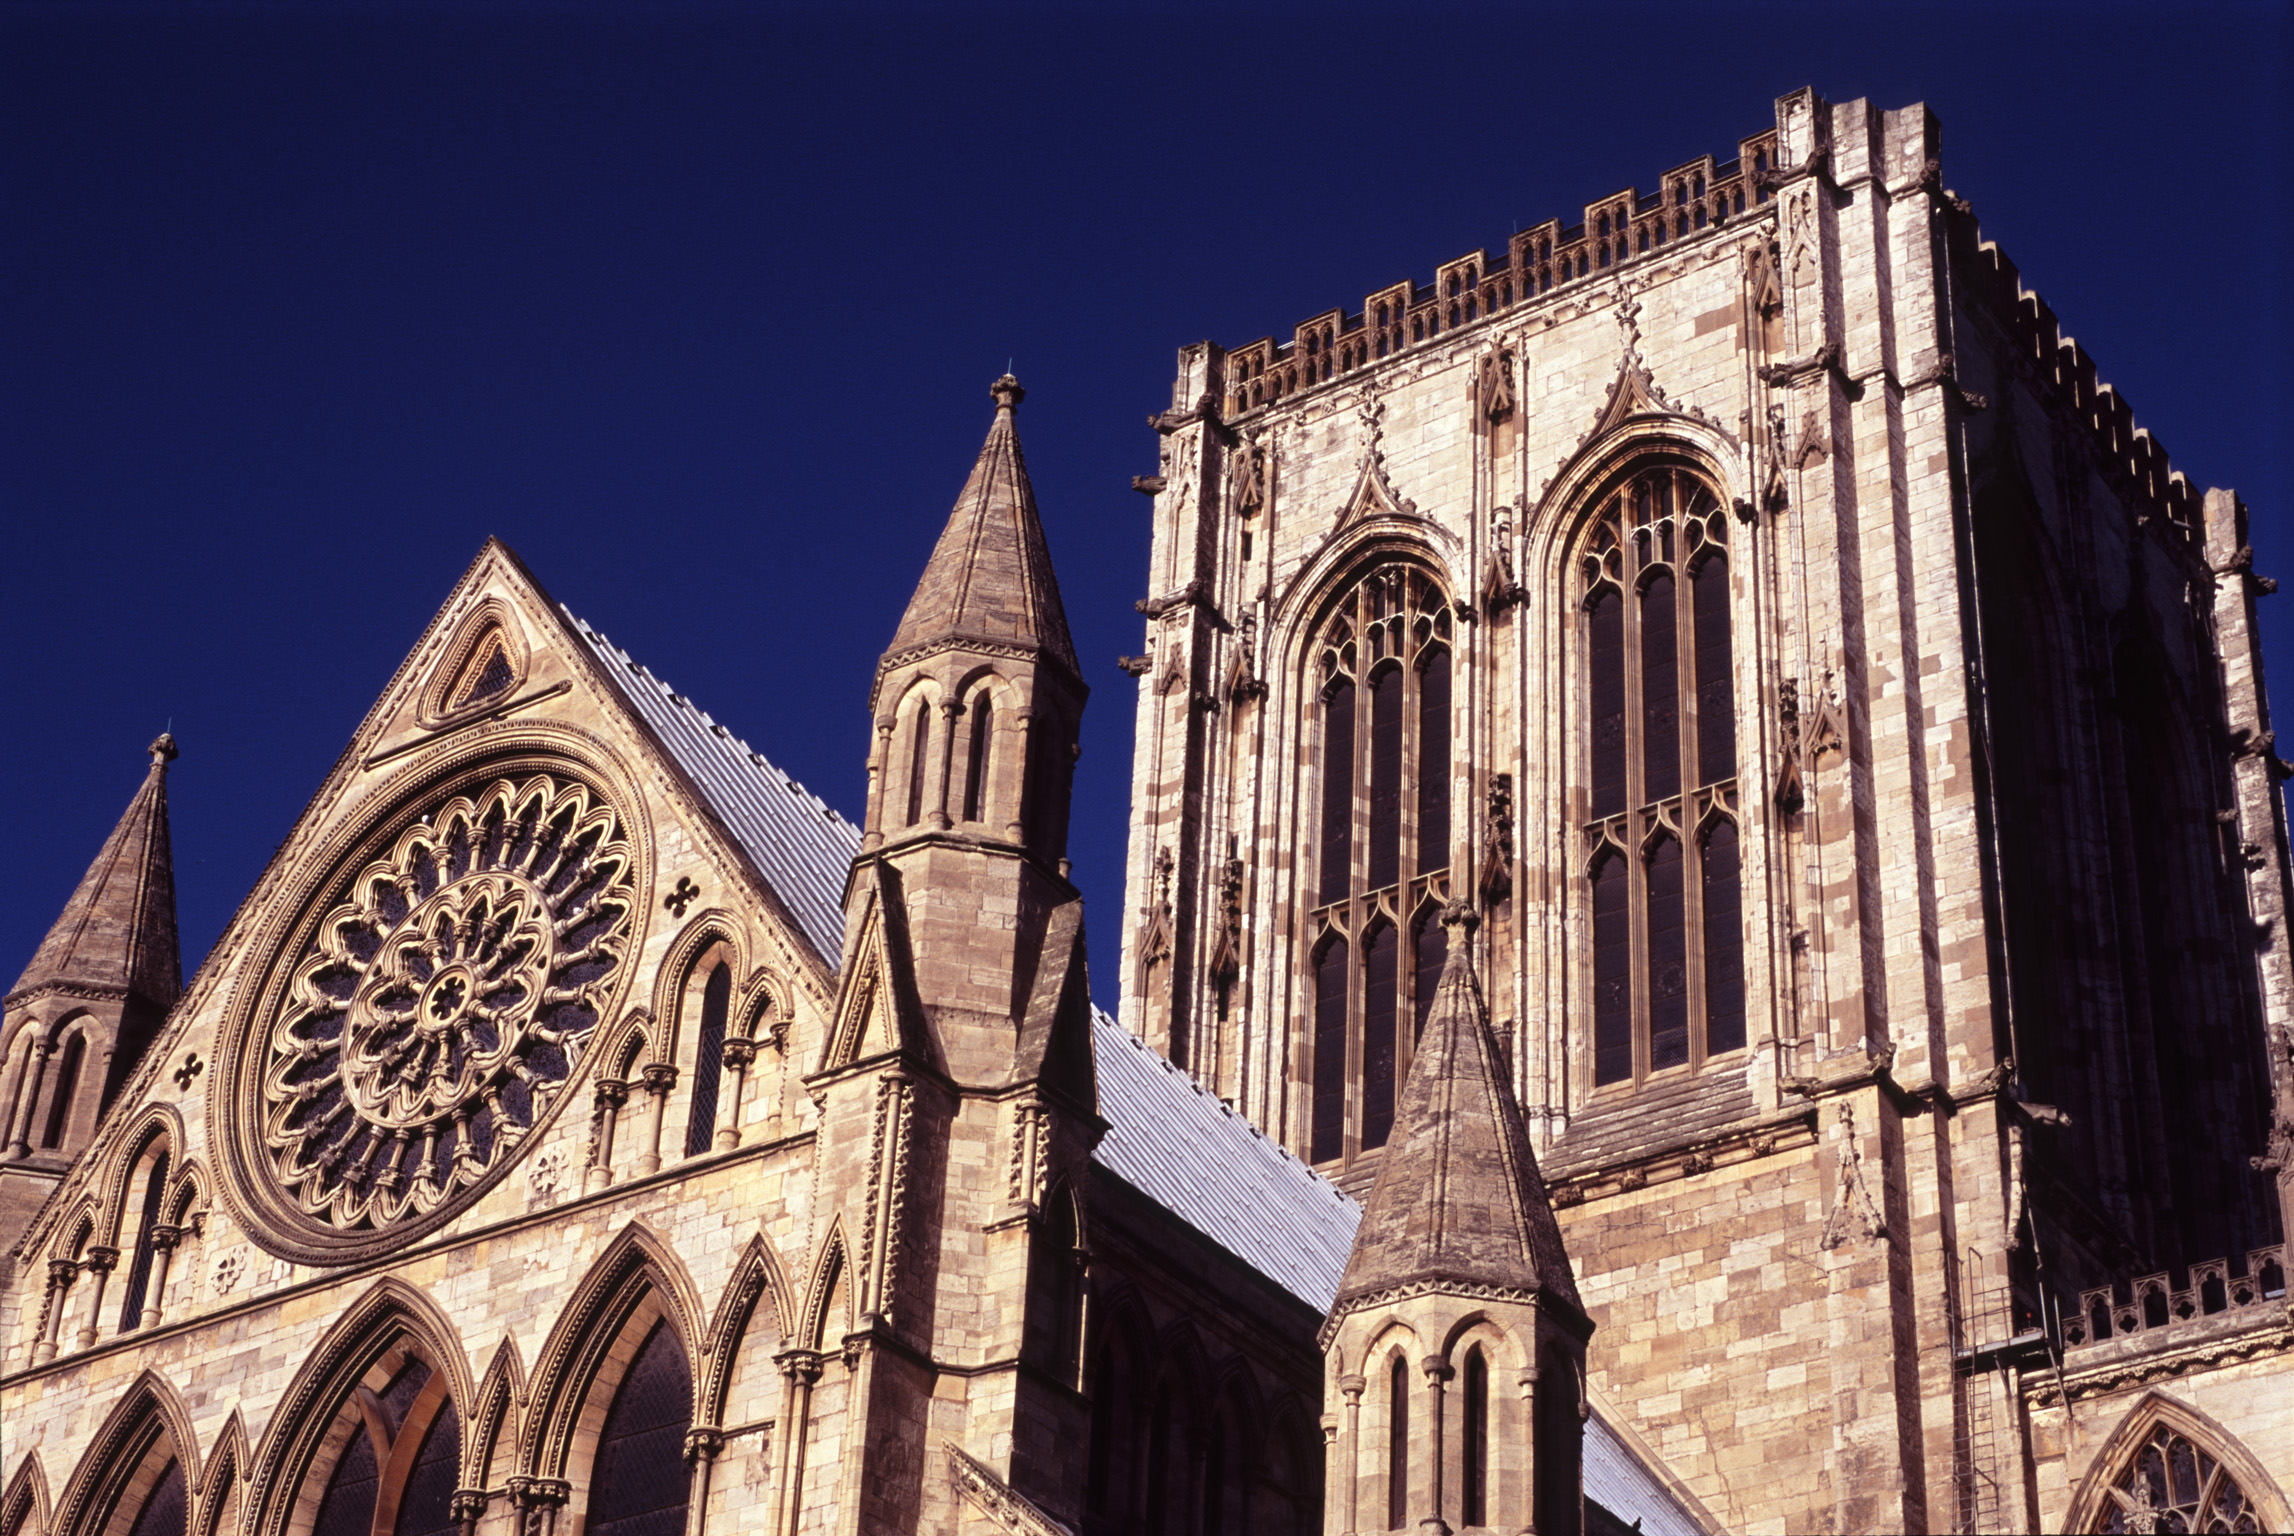 A view of York Minster against a deep blue sky